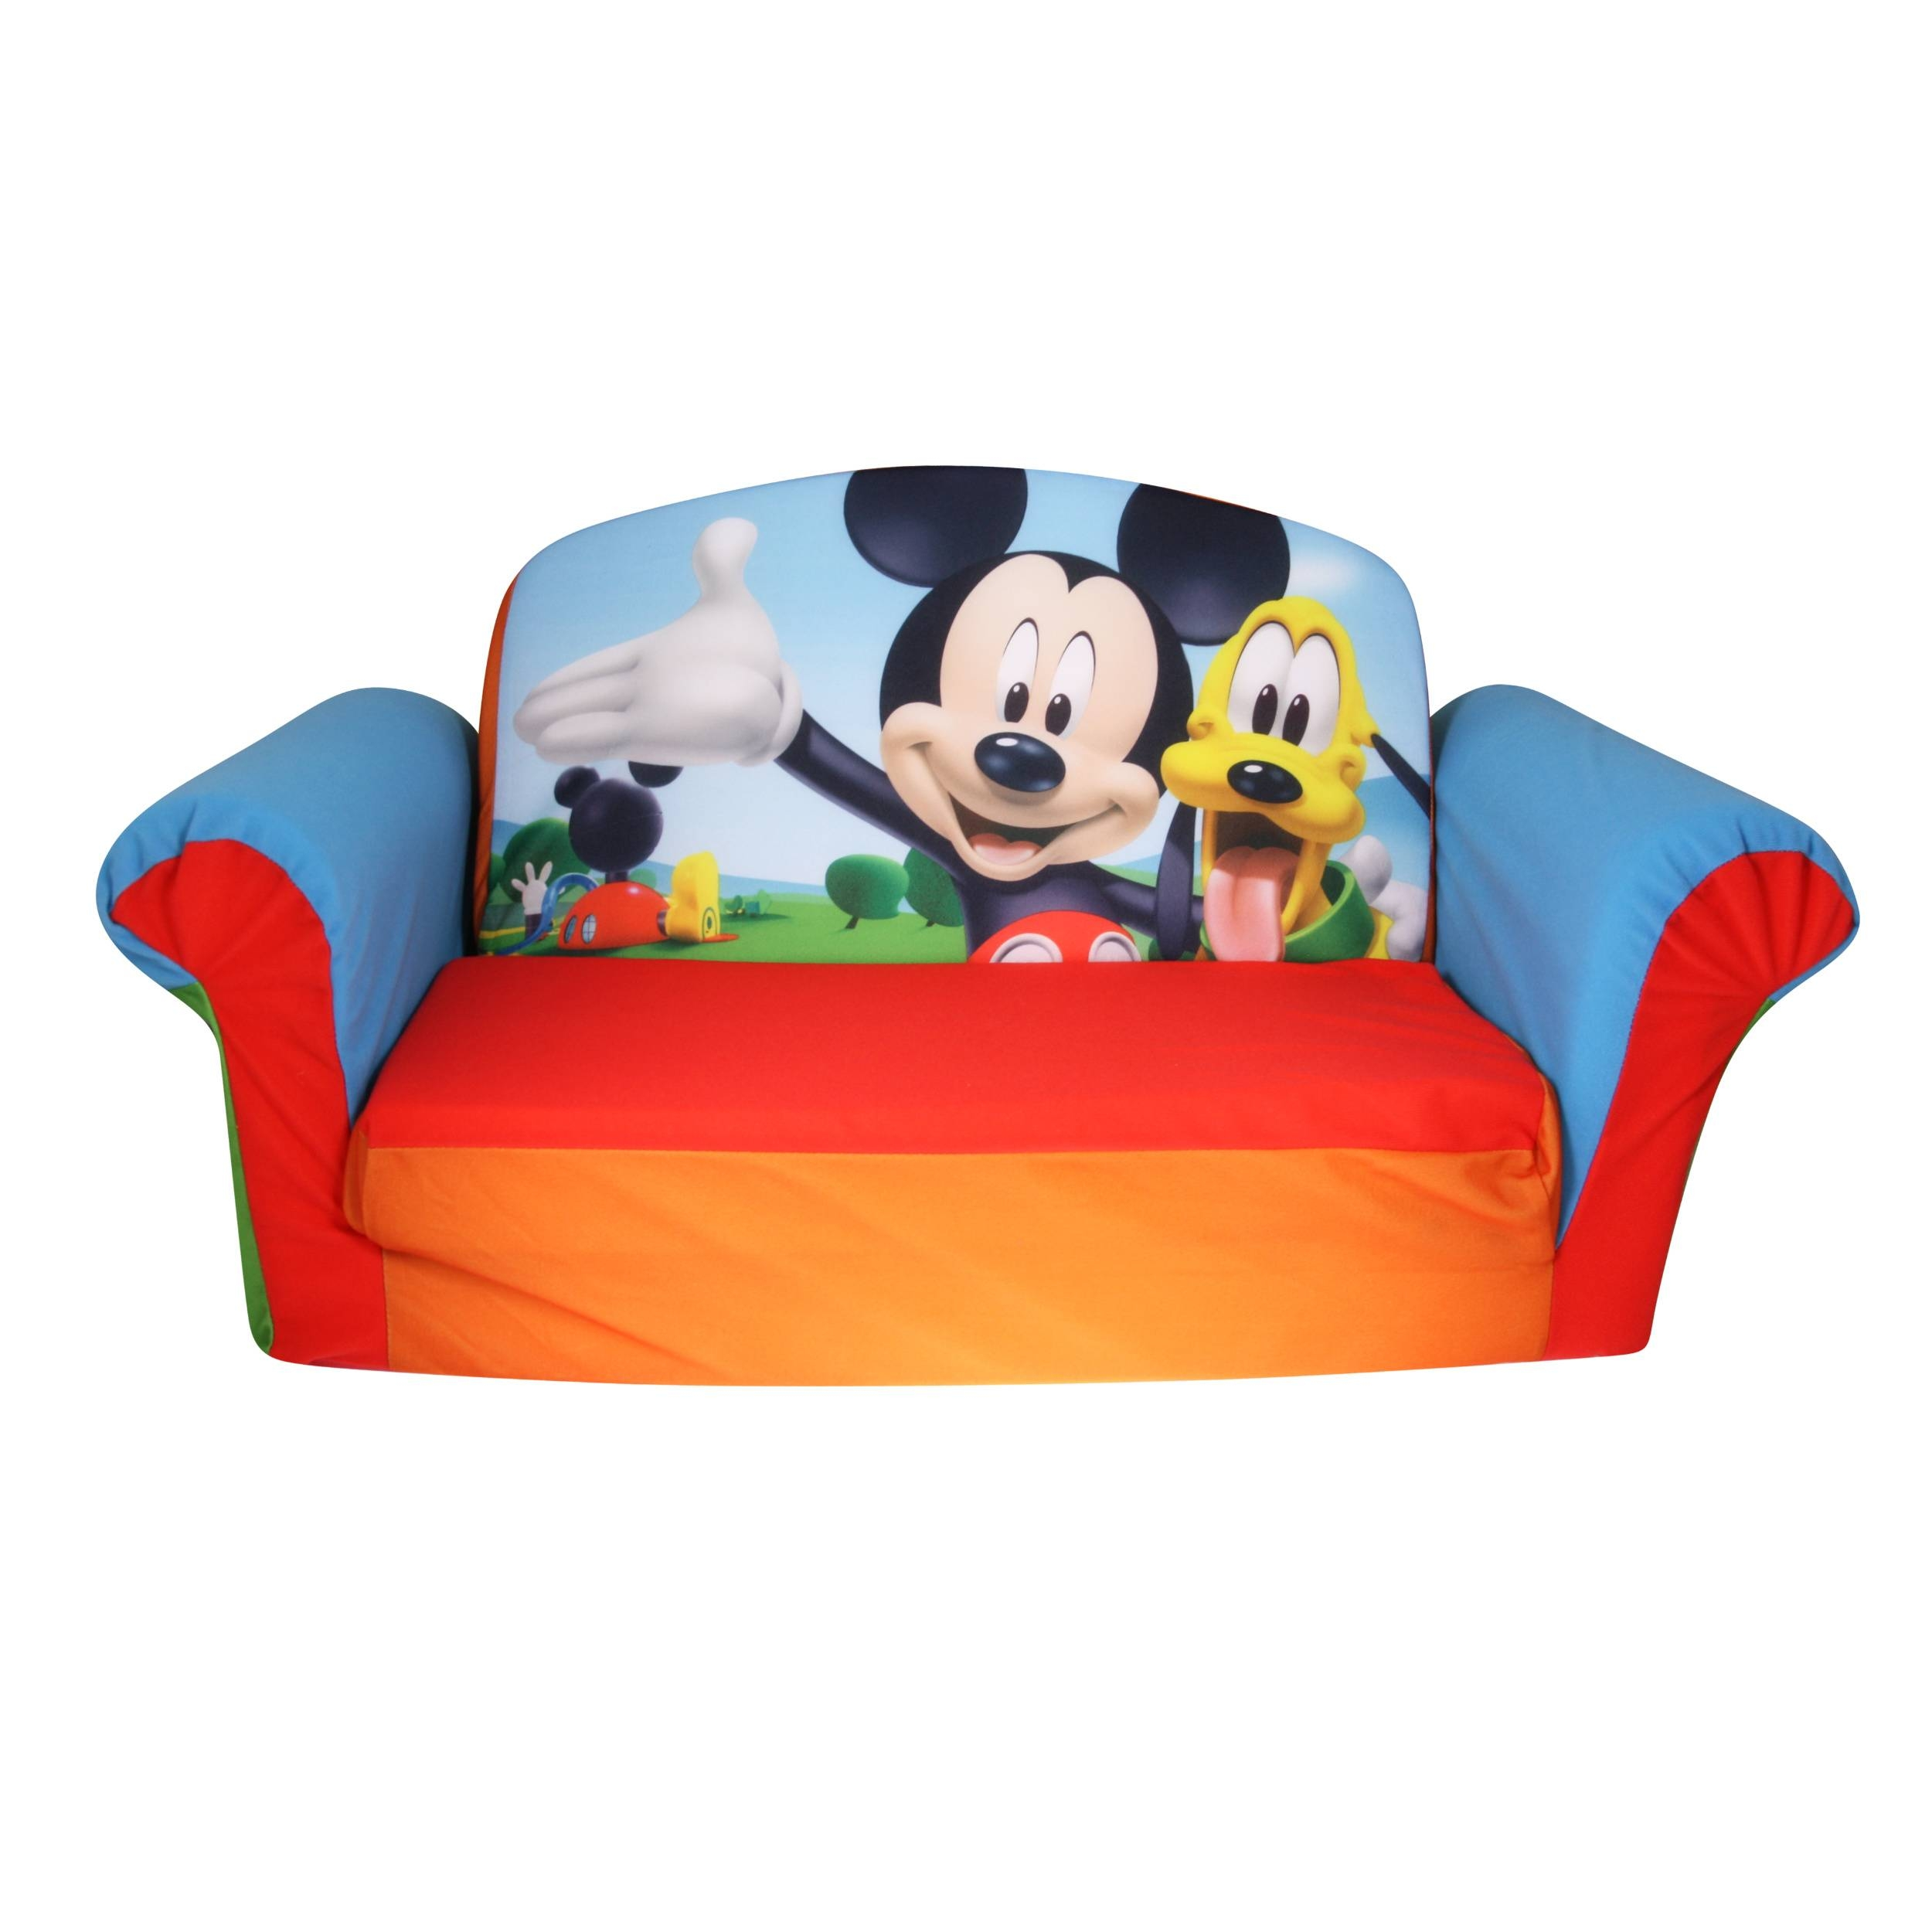 Marshmallow Furniture, Children's 2 In 1 Flip Open Foam Sofa intended for Mickey Fold Out Couches (Image 9 of 15)